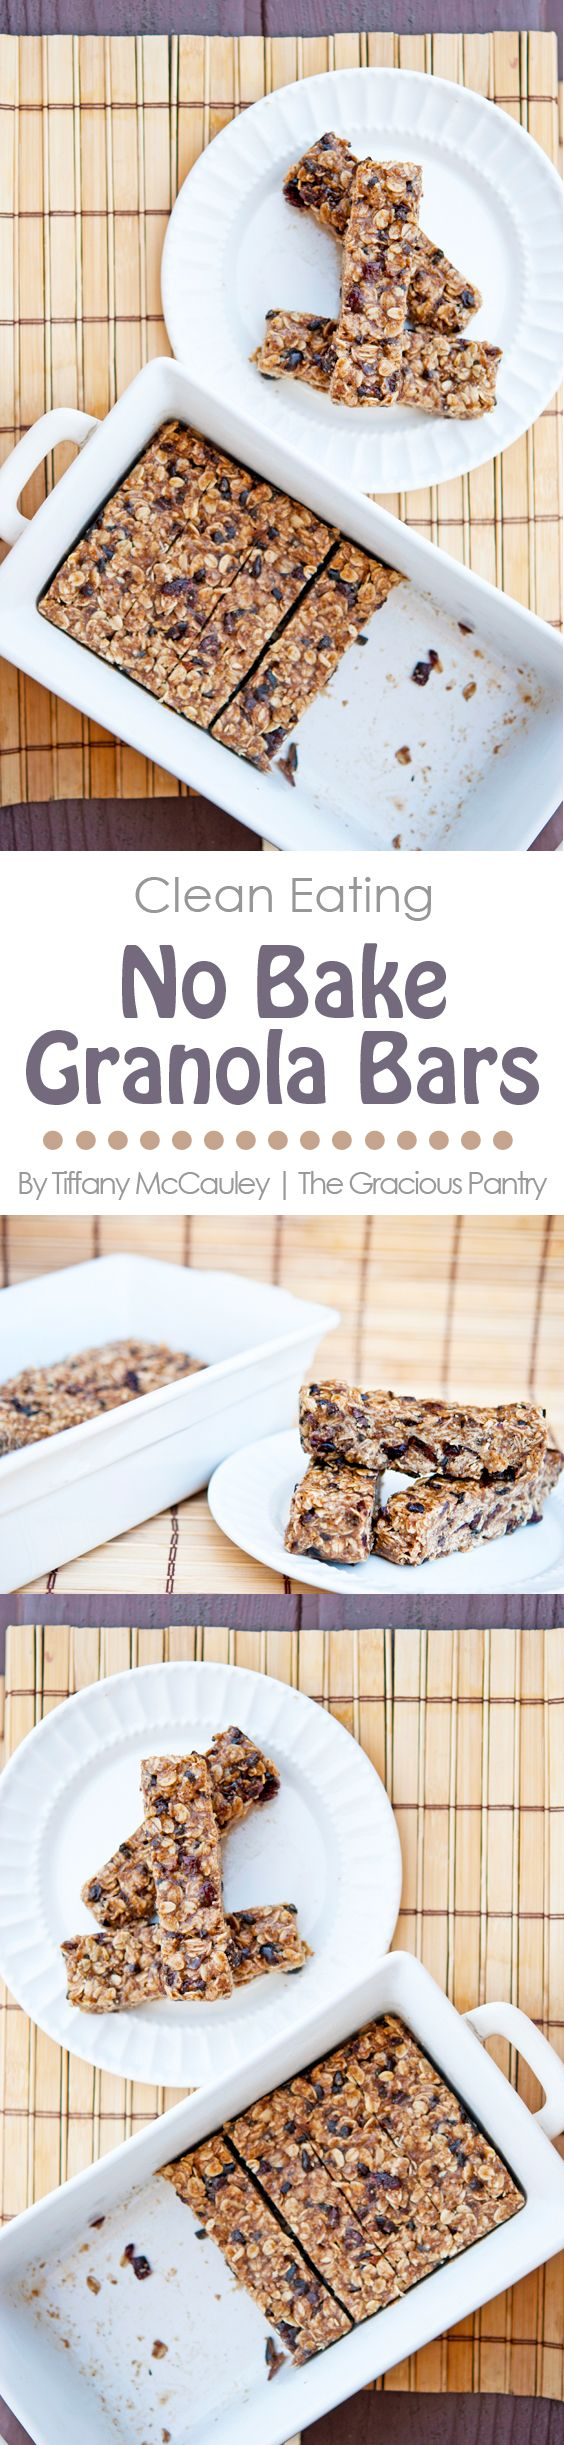 Clean Eating No Bake Oatmeal Granola Bars. Perfect for Back To School lunches!! ~ https://www.thegraciouspantry.com